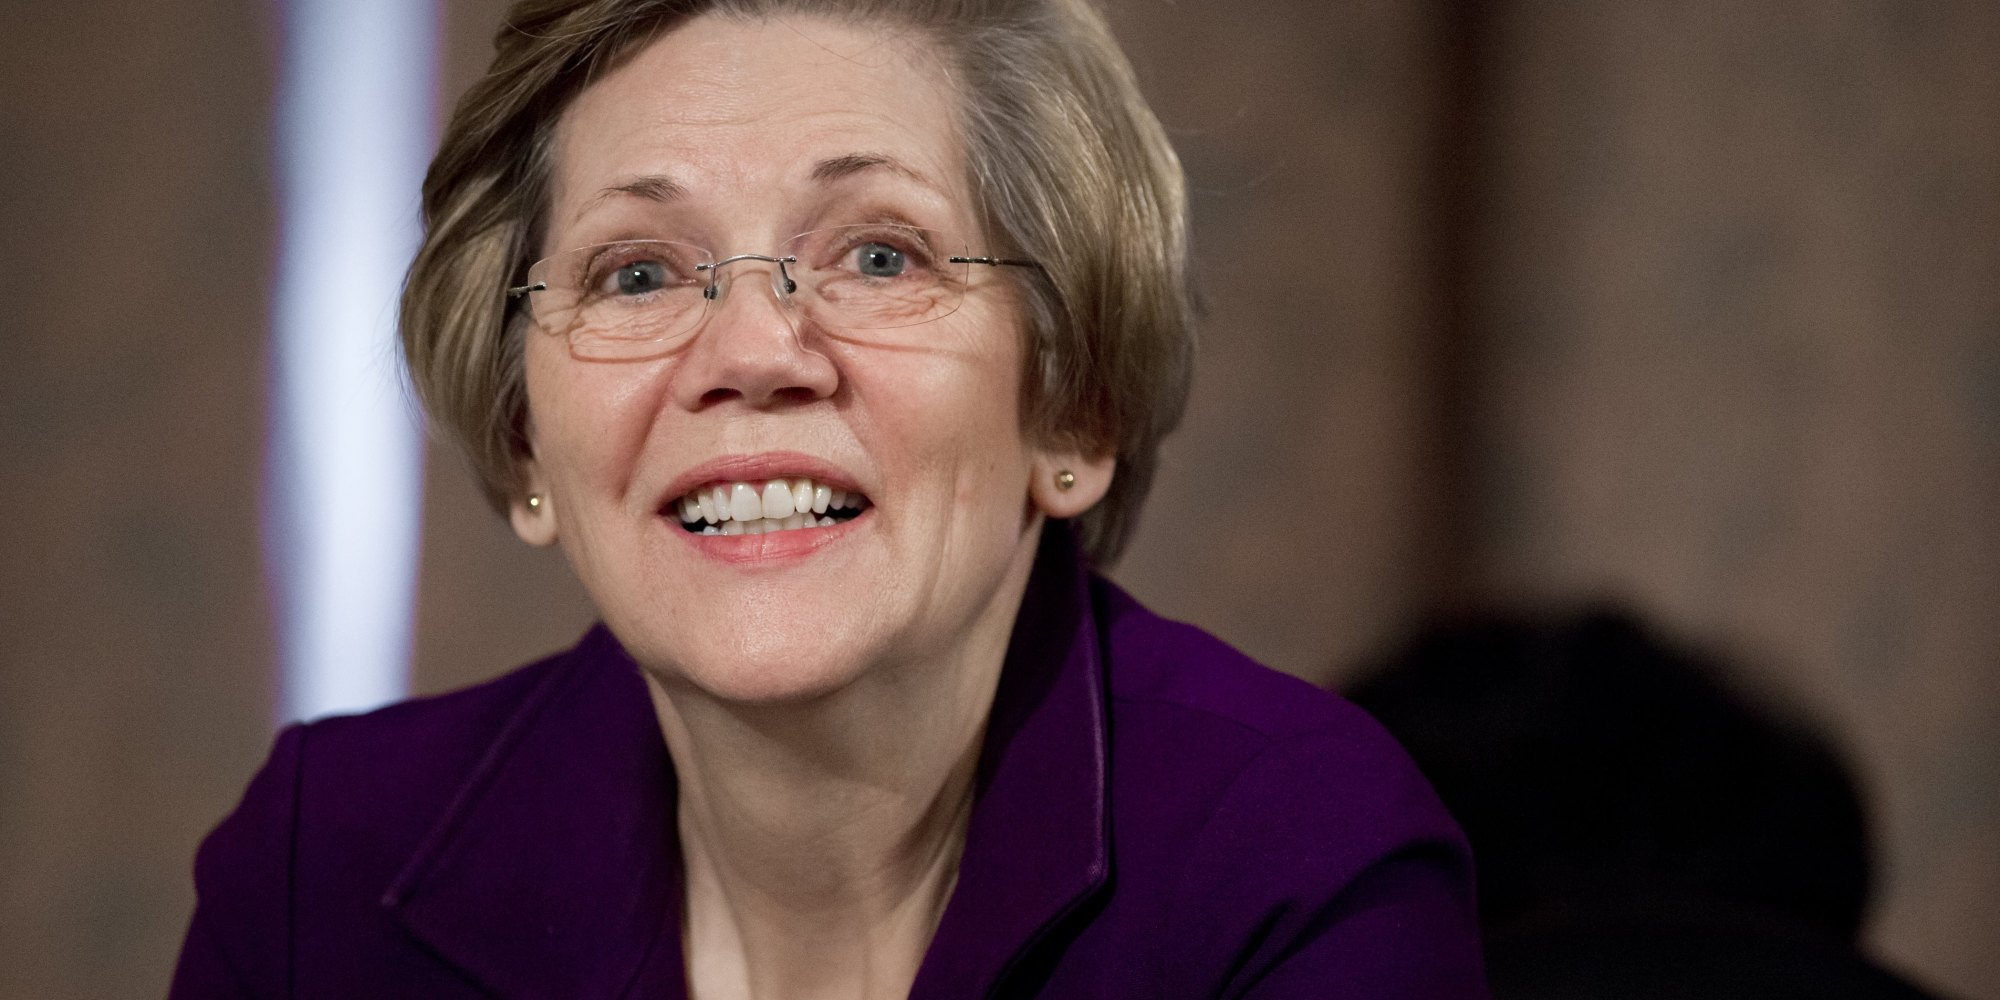 Occupy Amazon: Elizabeth Warren, Thomas Piketty, Michael Lewis Books Surging Online